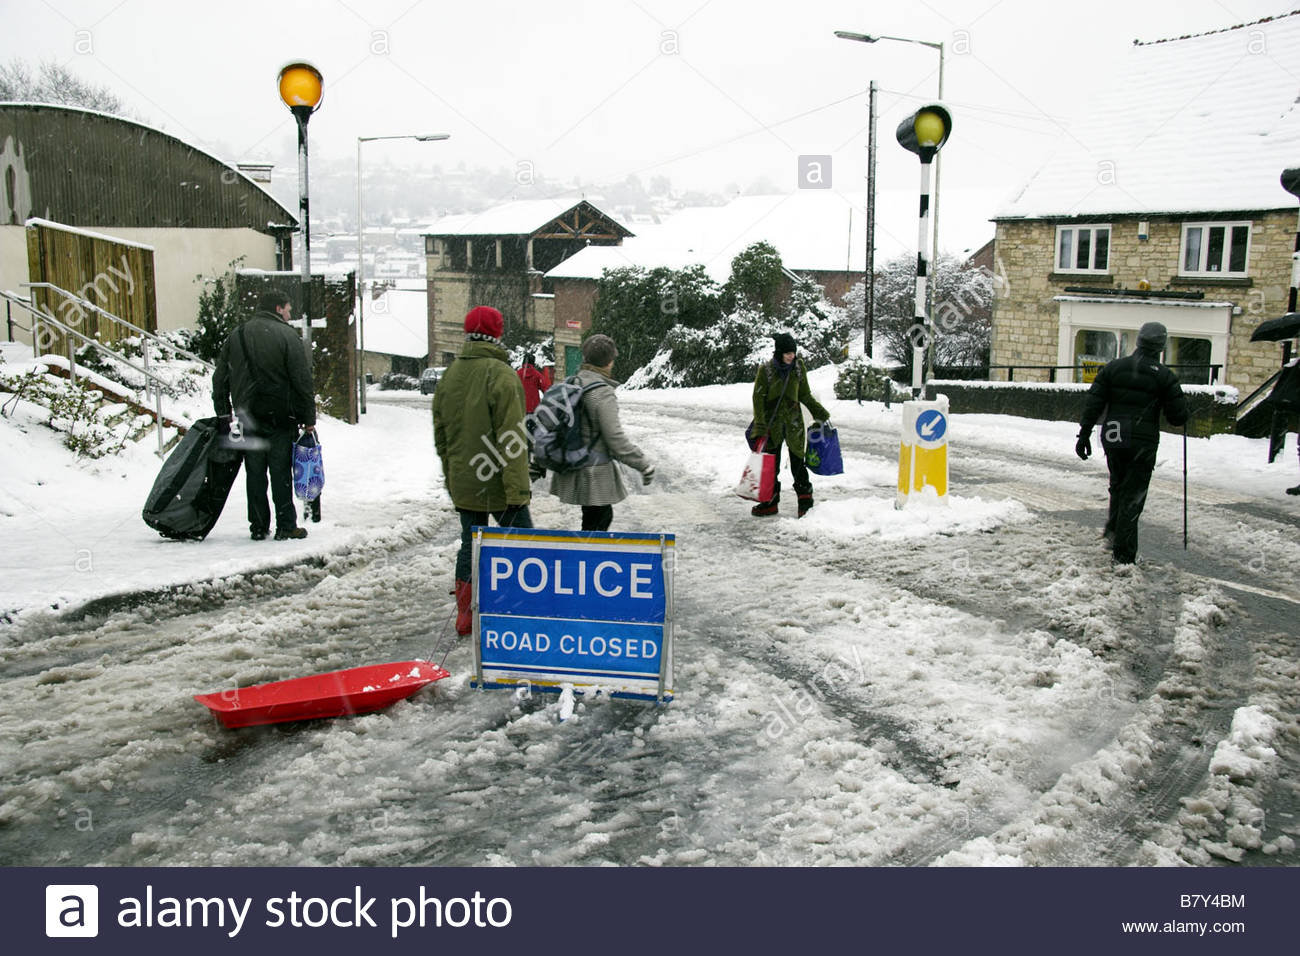 Snow disruption in Stroud - 'Police Road Closed' sign. UK - Stock Image